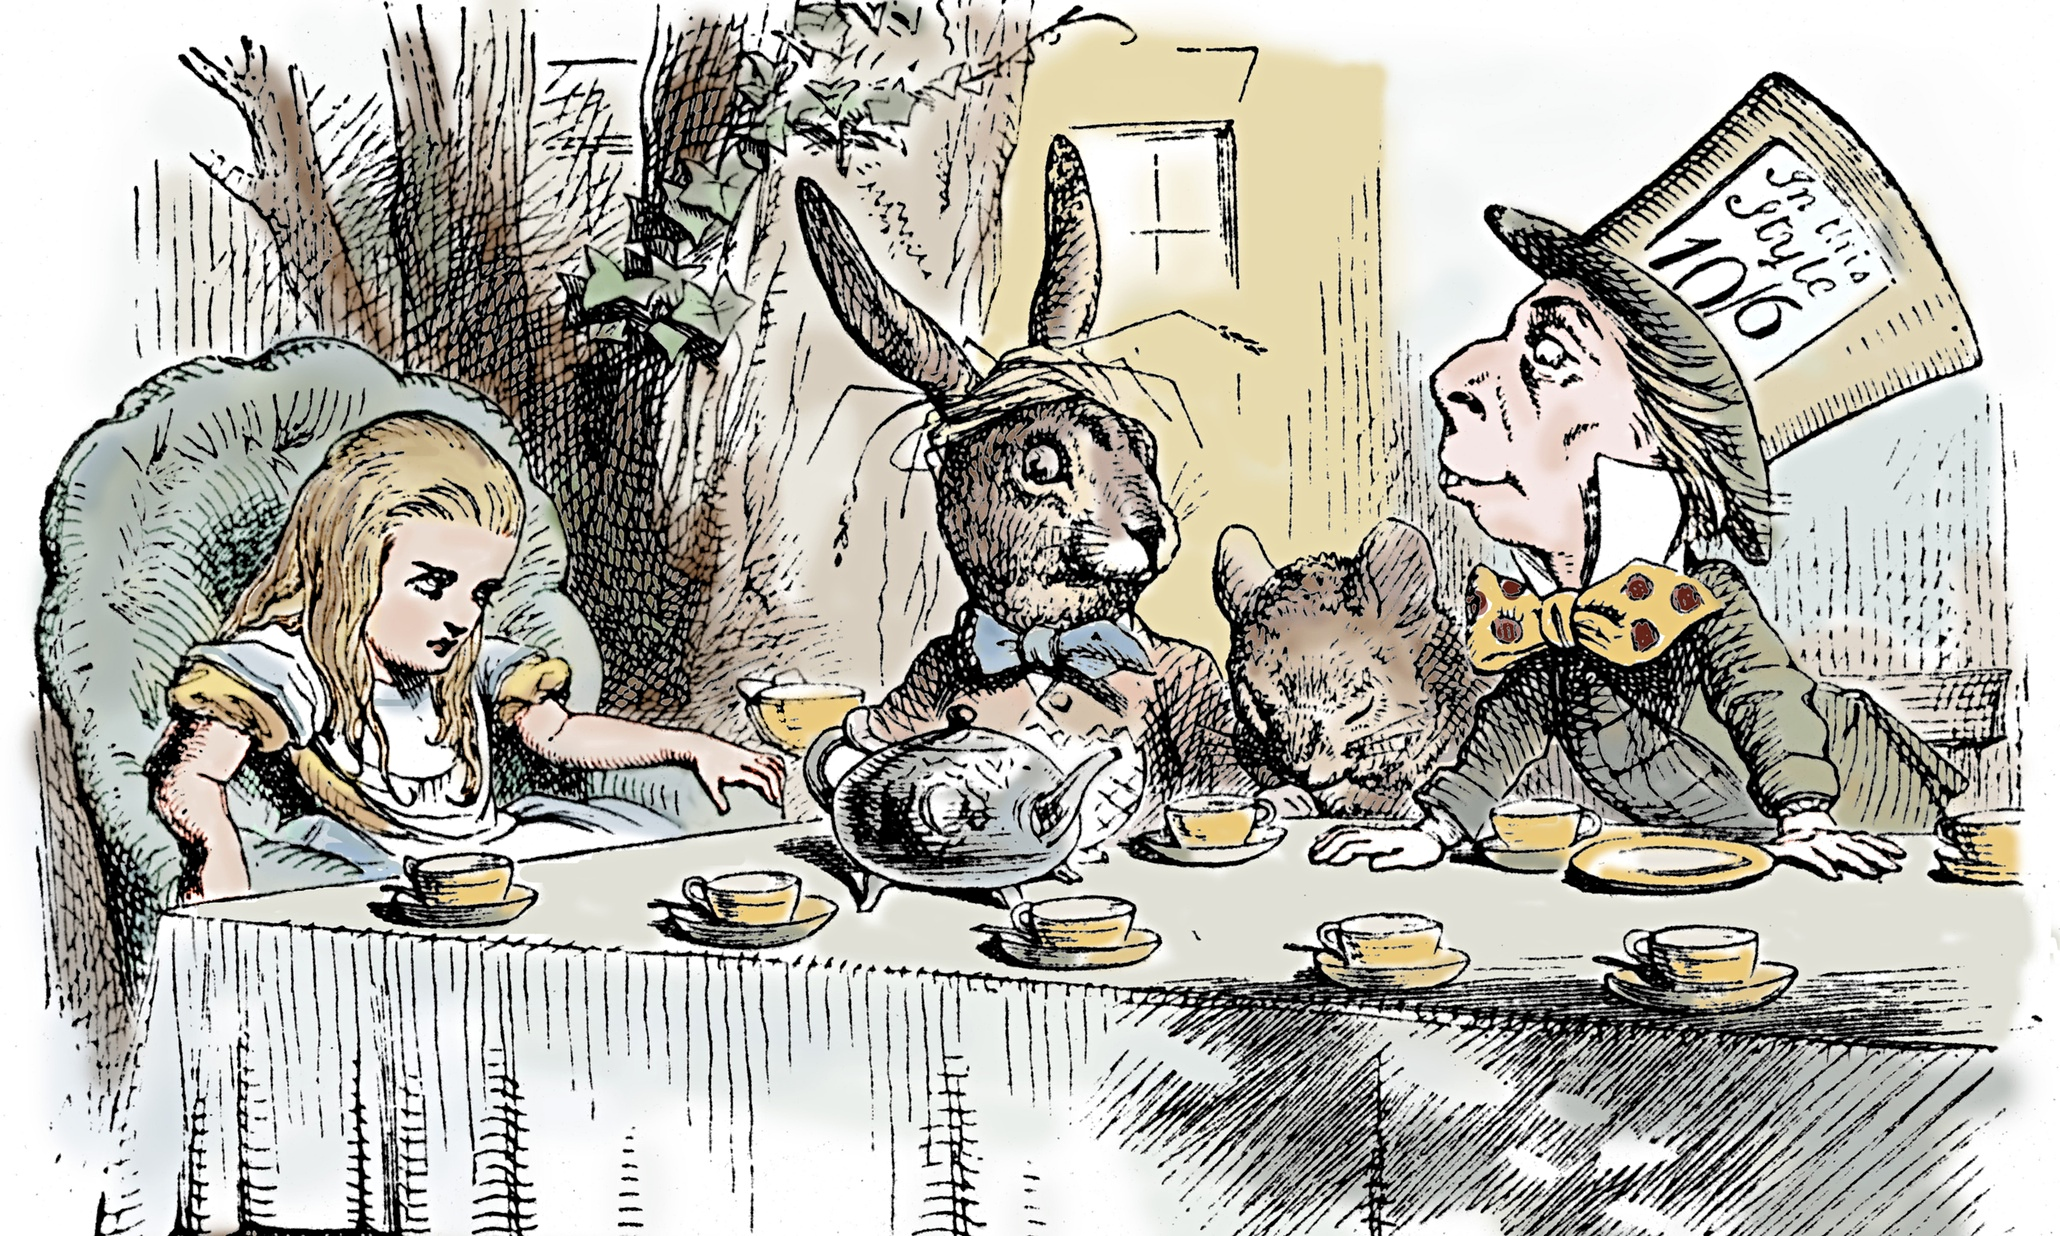 an analysis of representations in alice in wonderland by lewis carroll Alice in wonderland literary analysis many themes are explored when reading alice in wonderland and a curious child lewis carroll's classic alice in wonderland has entertained not only children but adults for auerbach discussed how alice is a representation of a middle.